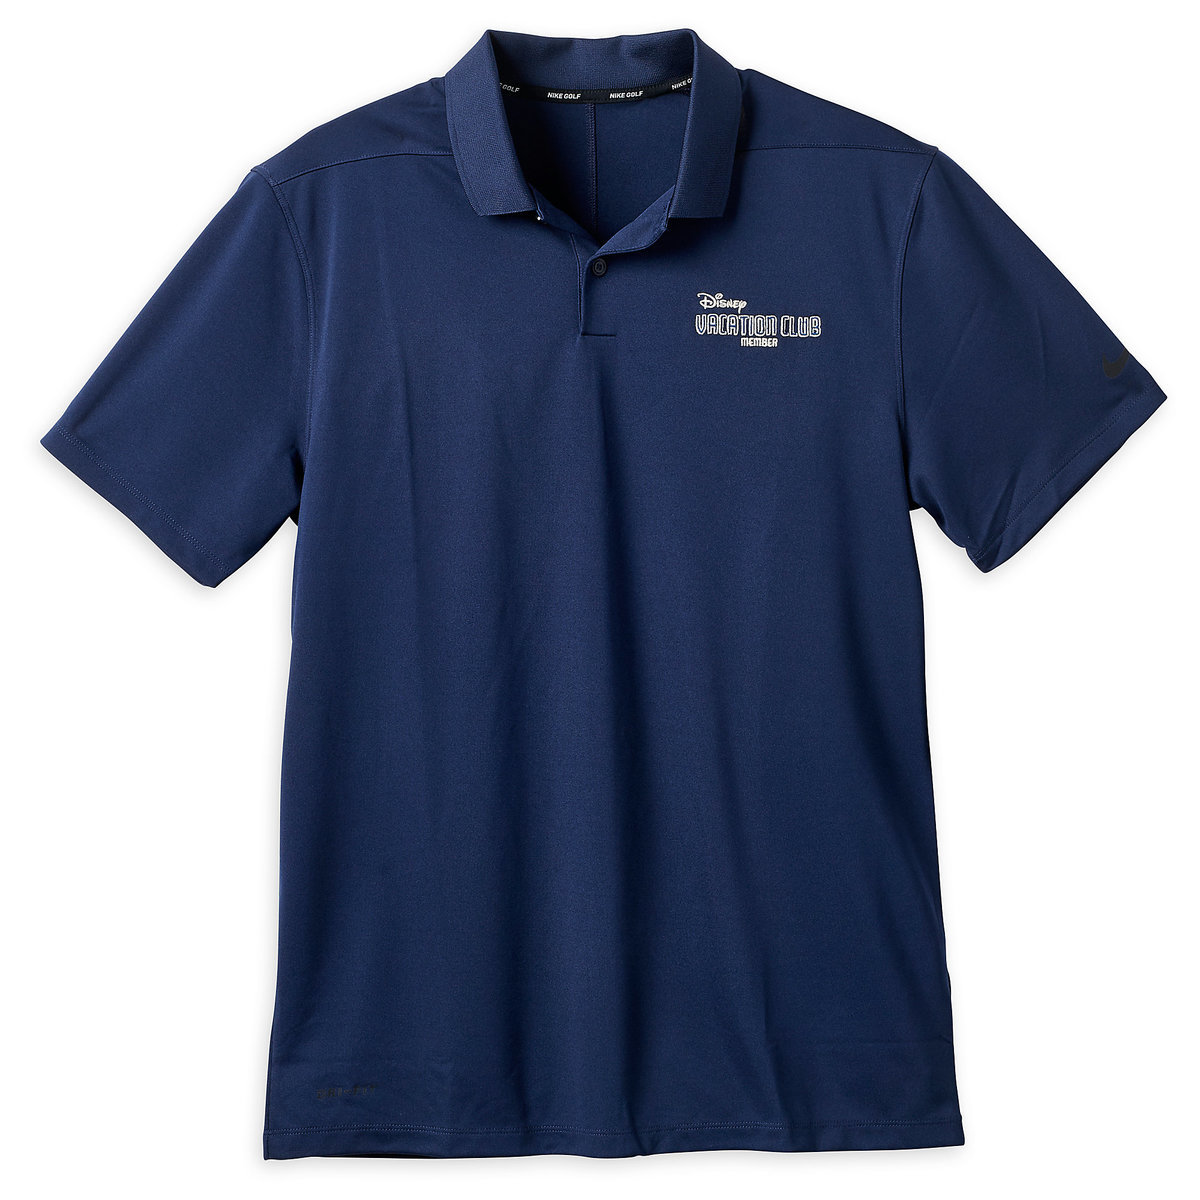 53eeaa82 Product Image of Disney Vacation Club Polo Shirt for Men by Nike Golf - Navy  #